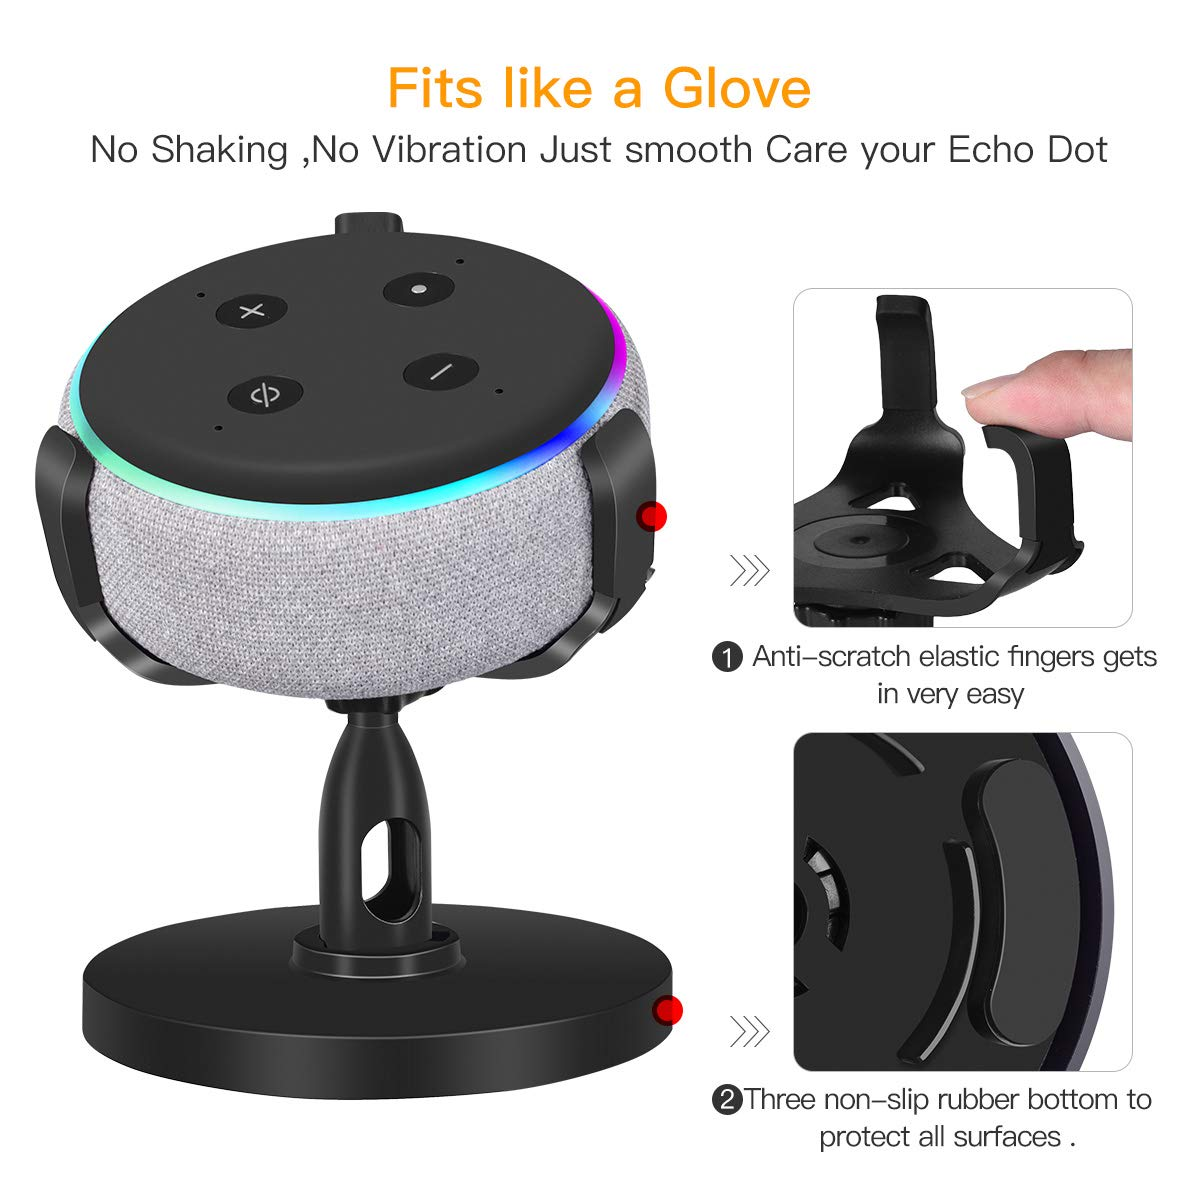 iKammo Table Stand Holder for Dot 3rd Gen - 360°Rotatable Rubber Pedestal Stand Bracket Mount, Dot 3rd Gen Accessories for Smart Home, Enhanced Sound Surround(Black)